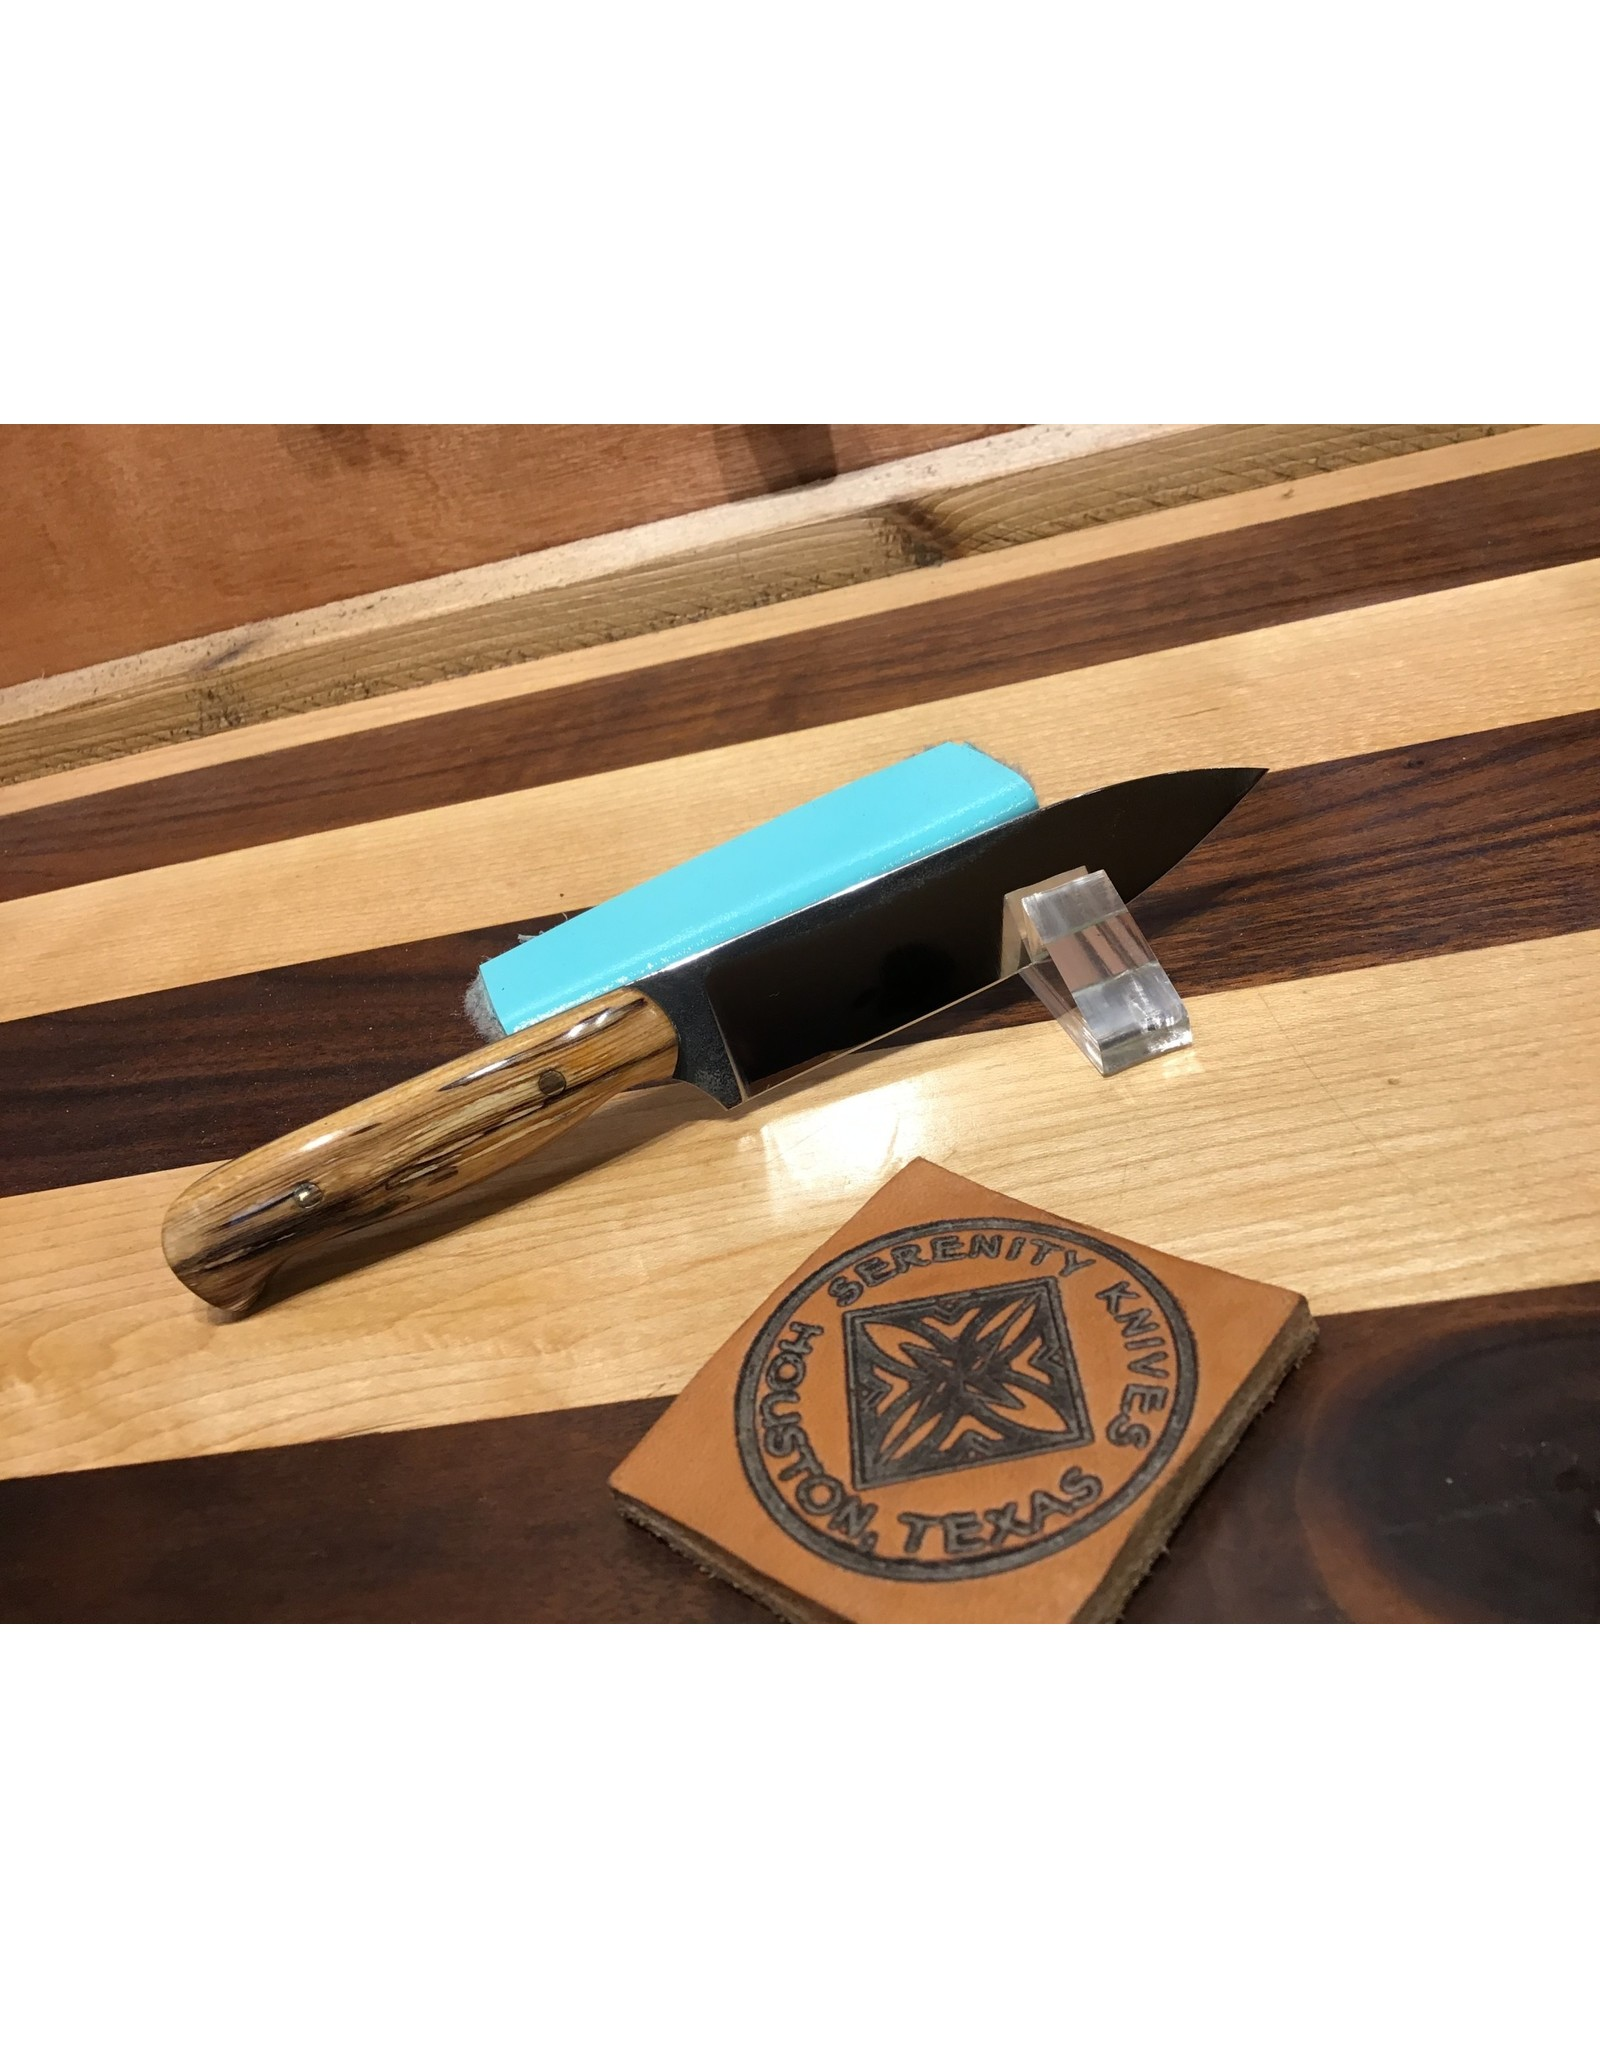 Serenity Small Gabriel's Paring Knife in Spalted Sugar Maple